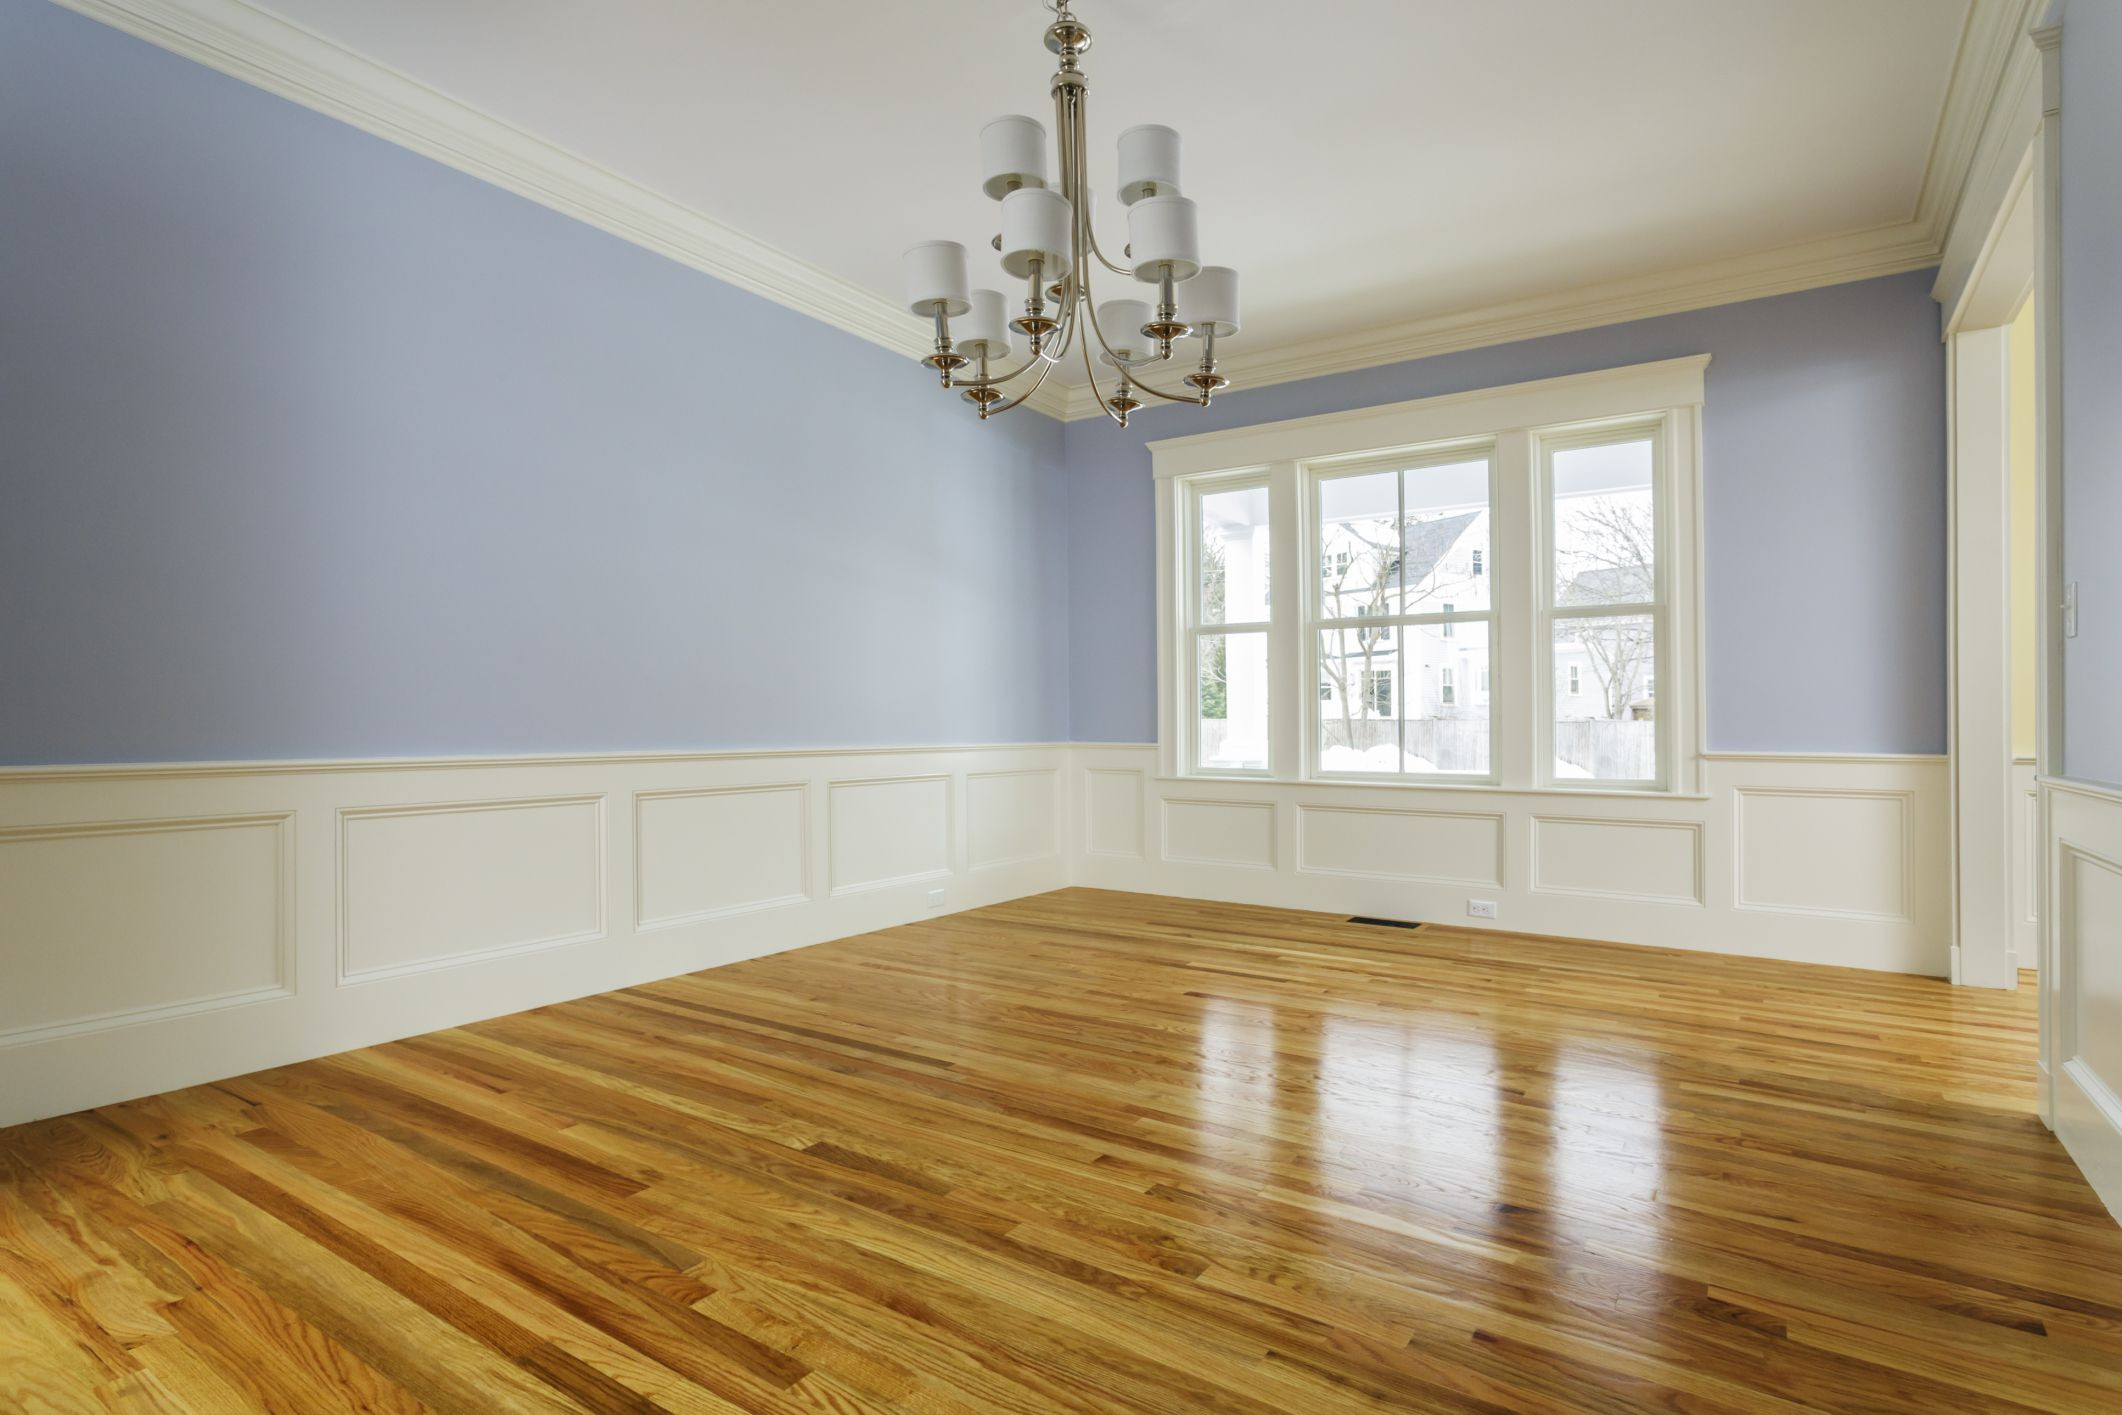 hardwood flooring 3 vs 5 of the cost to refinish hardwood floors intended for 168686572 highres 56a2fd773df78cf7727b6cb3